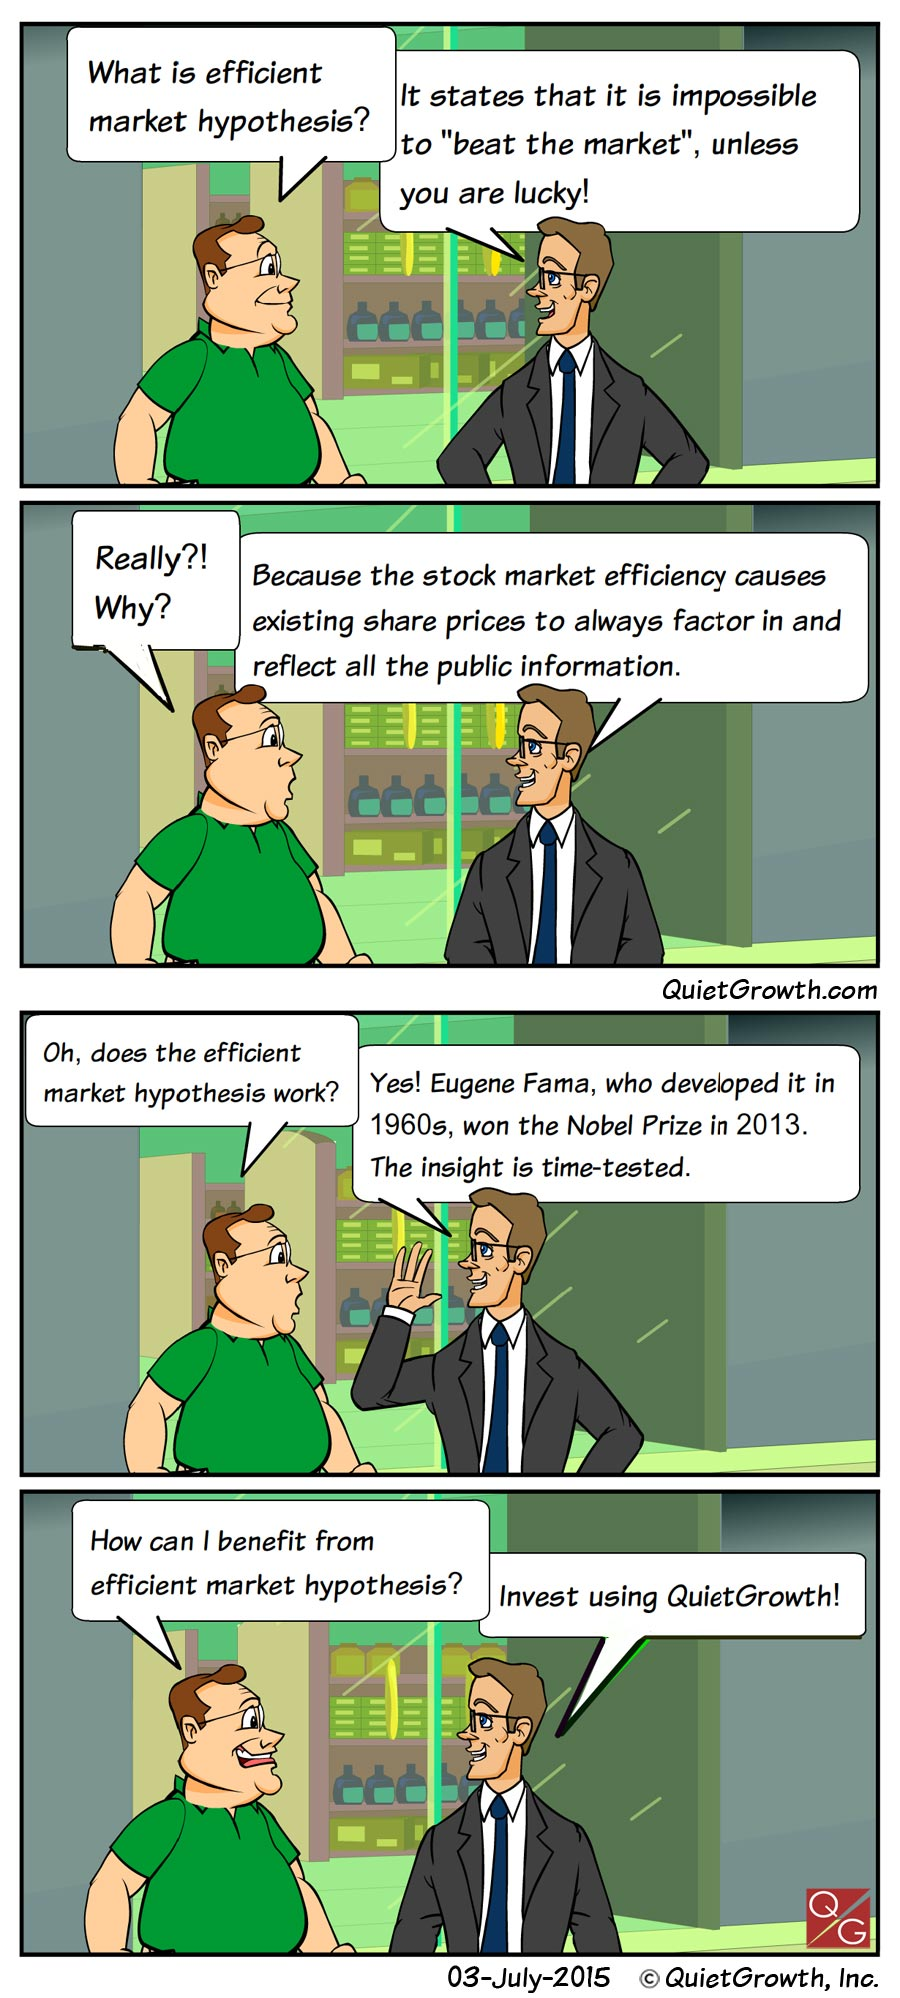 Cartoon 4: Efficient Market Hypothesis